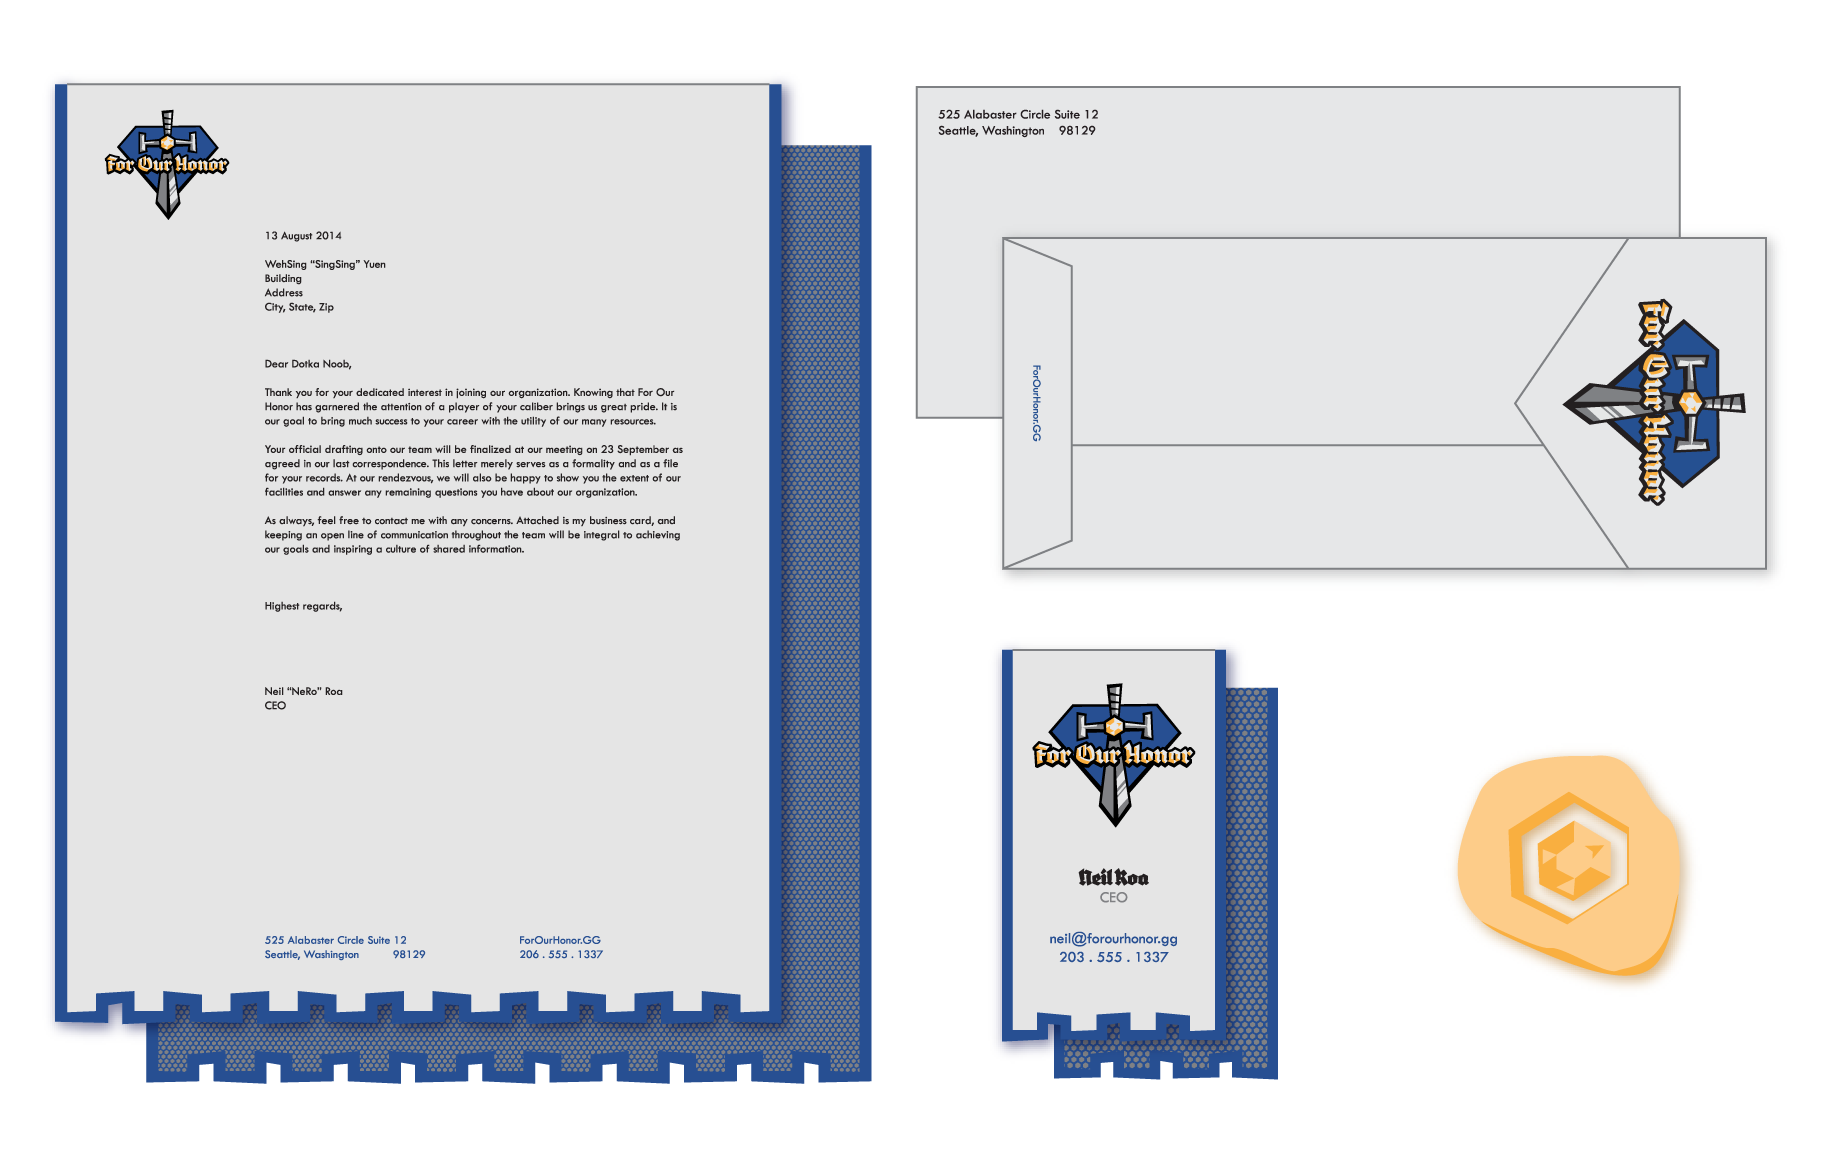 For Our Honor collateral